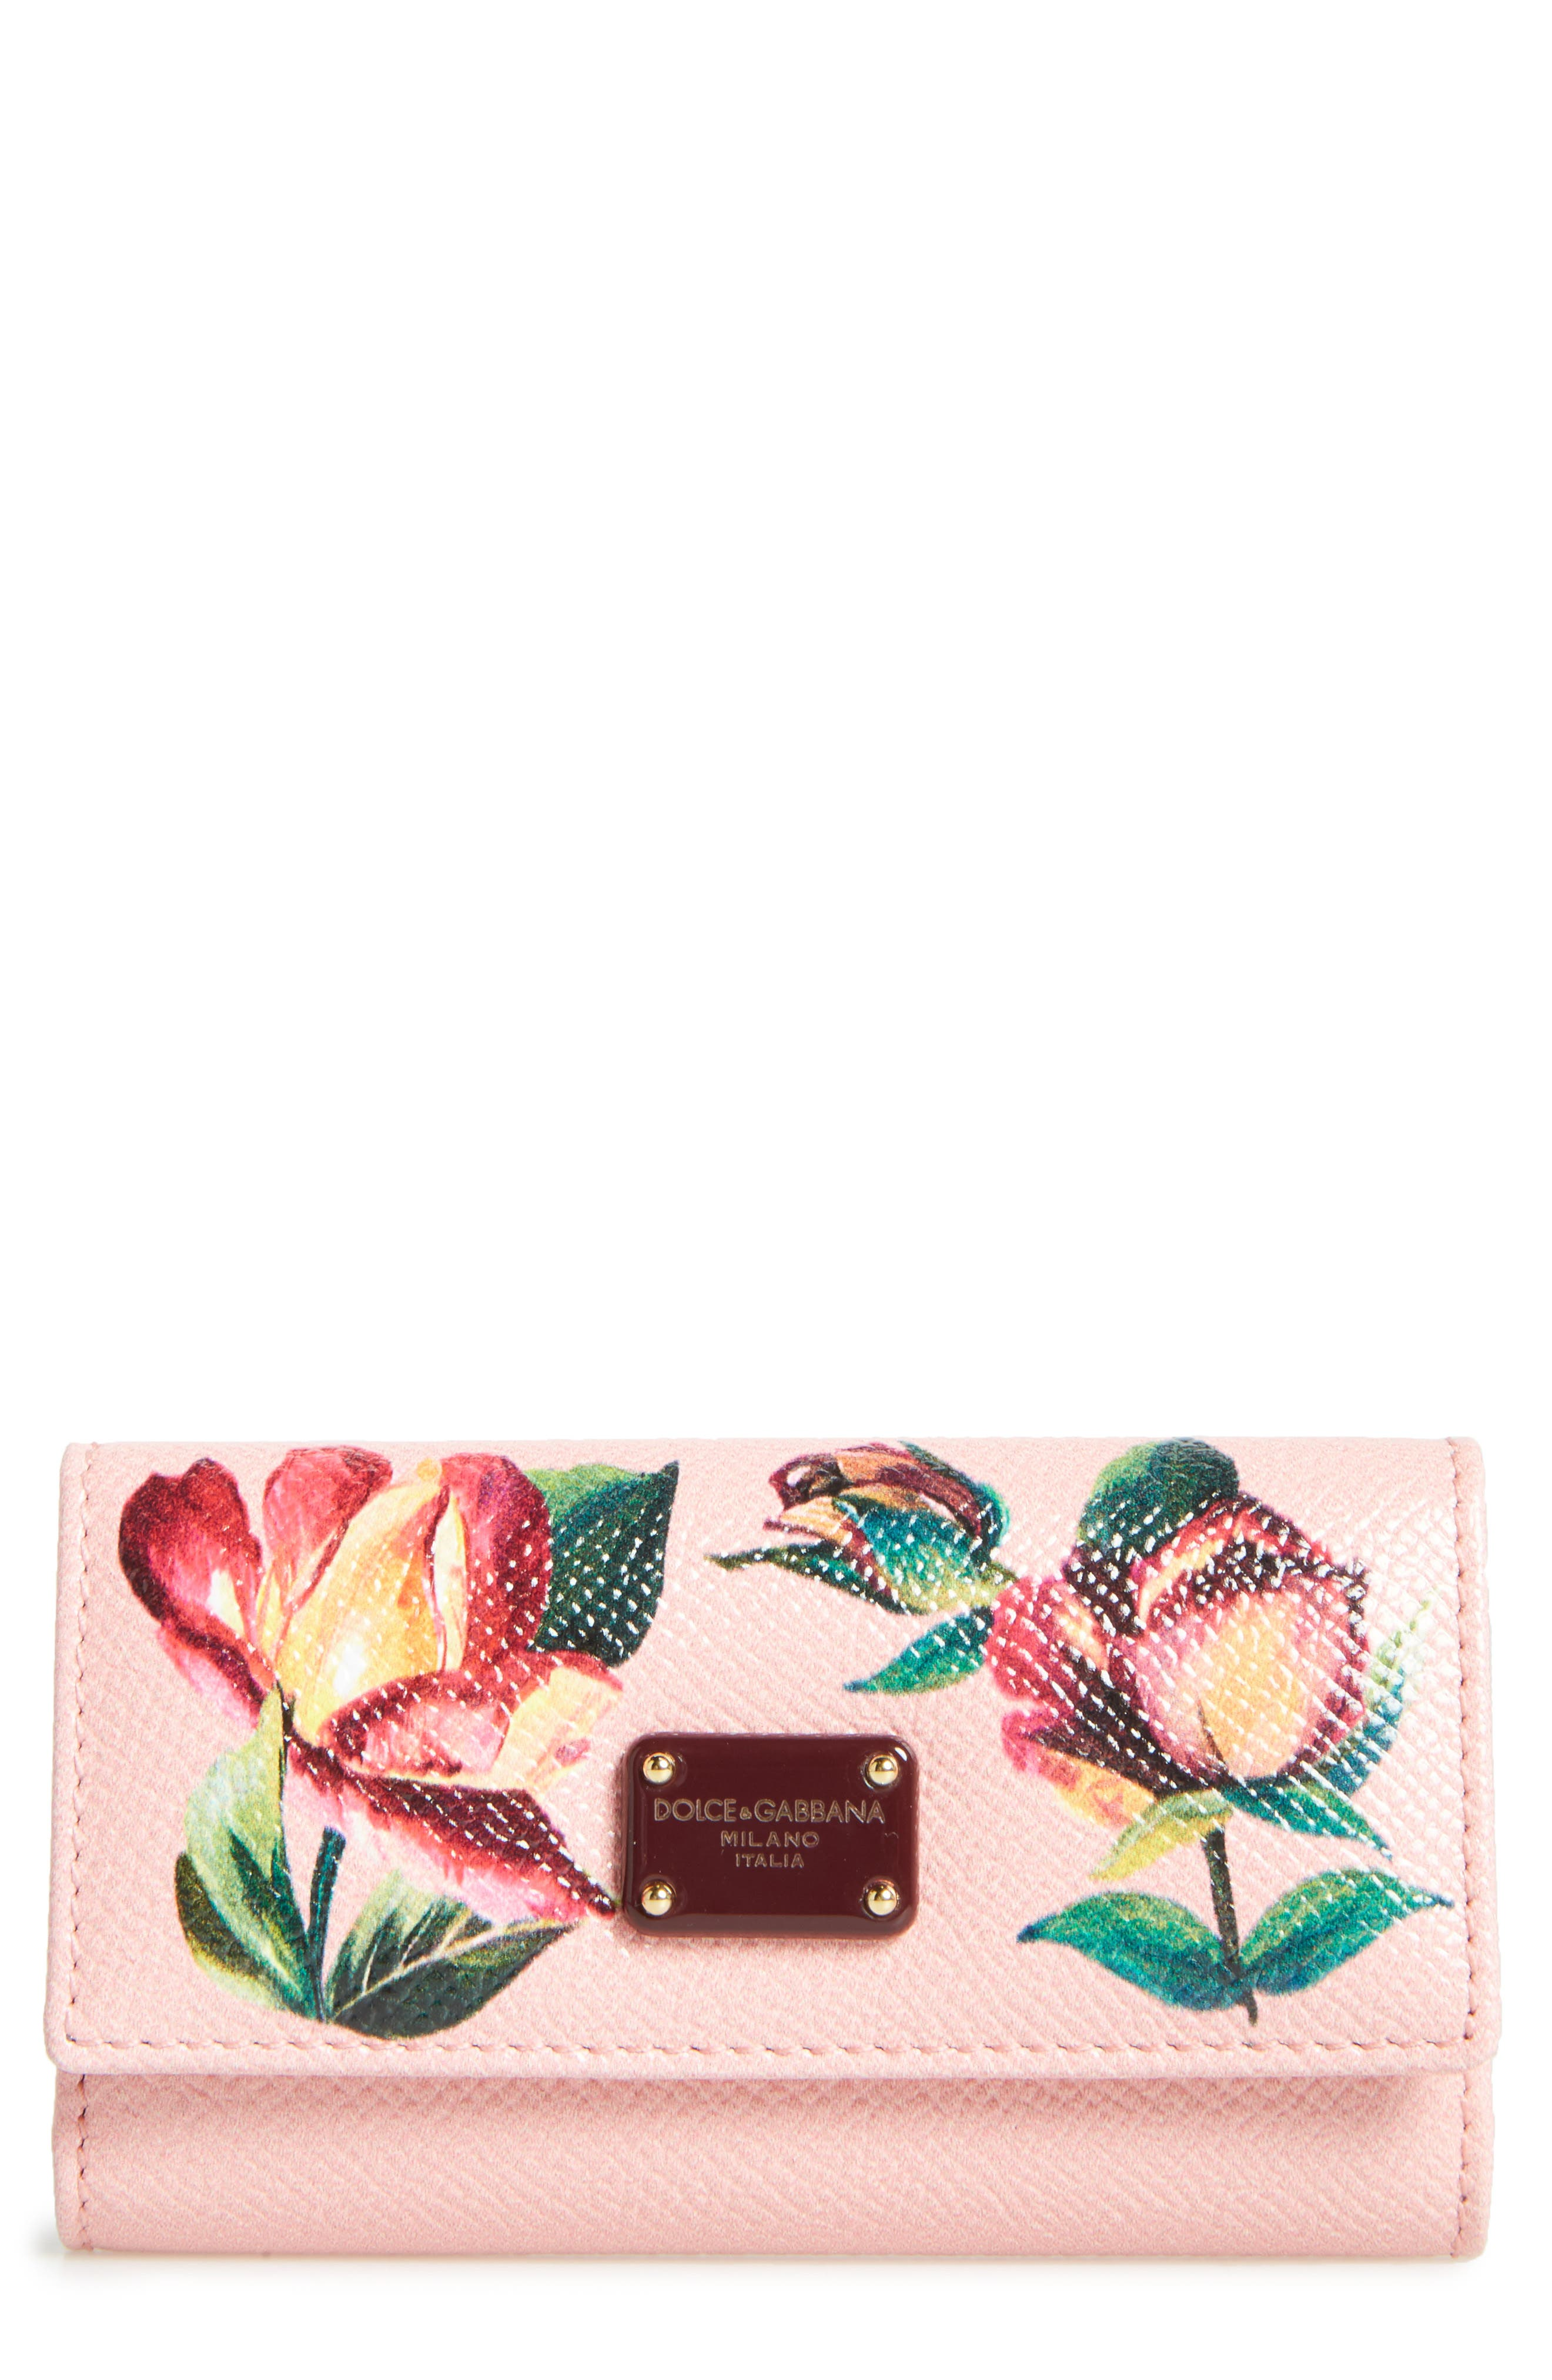 Dolce&Gabbana Painted Rose Dauphine Leather Key Holder